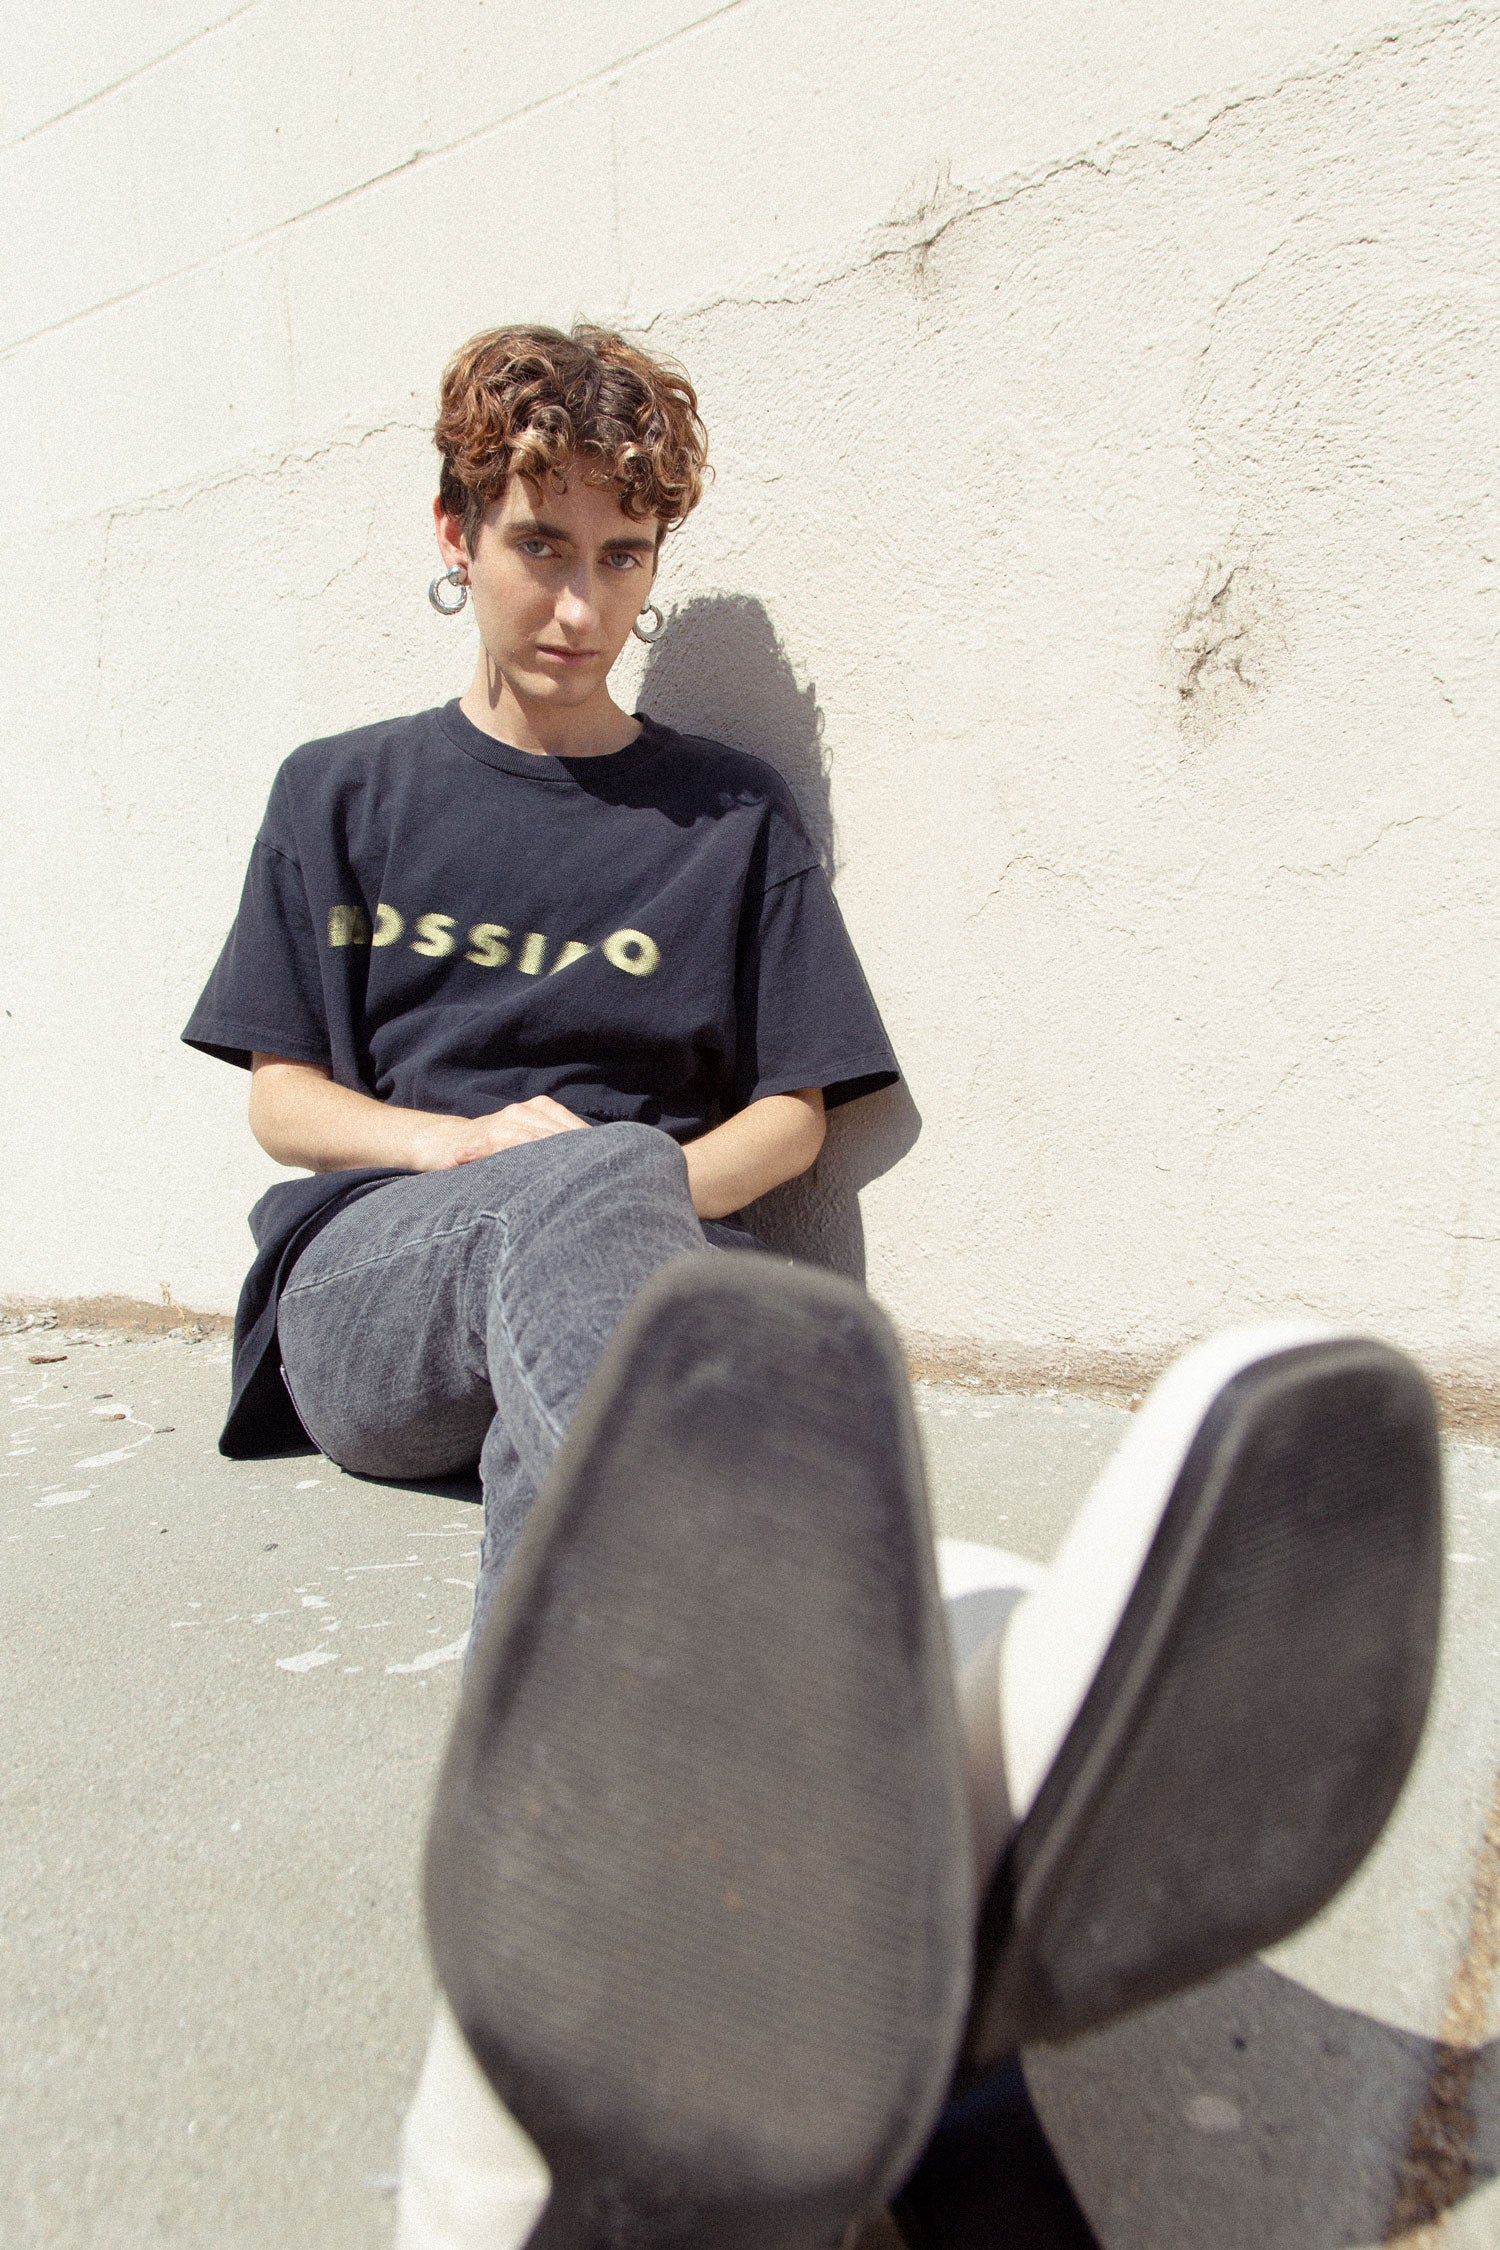 Non binary trans model sits on sidewalk with white boots facing camera. Wearing 90s graphic t shirt and vintage Levi's jeans.